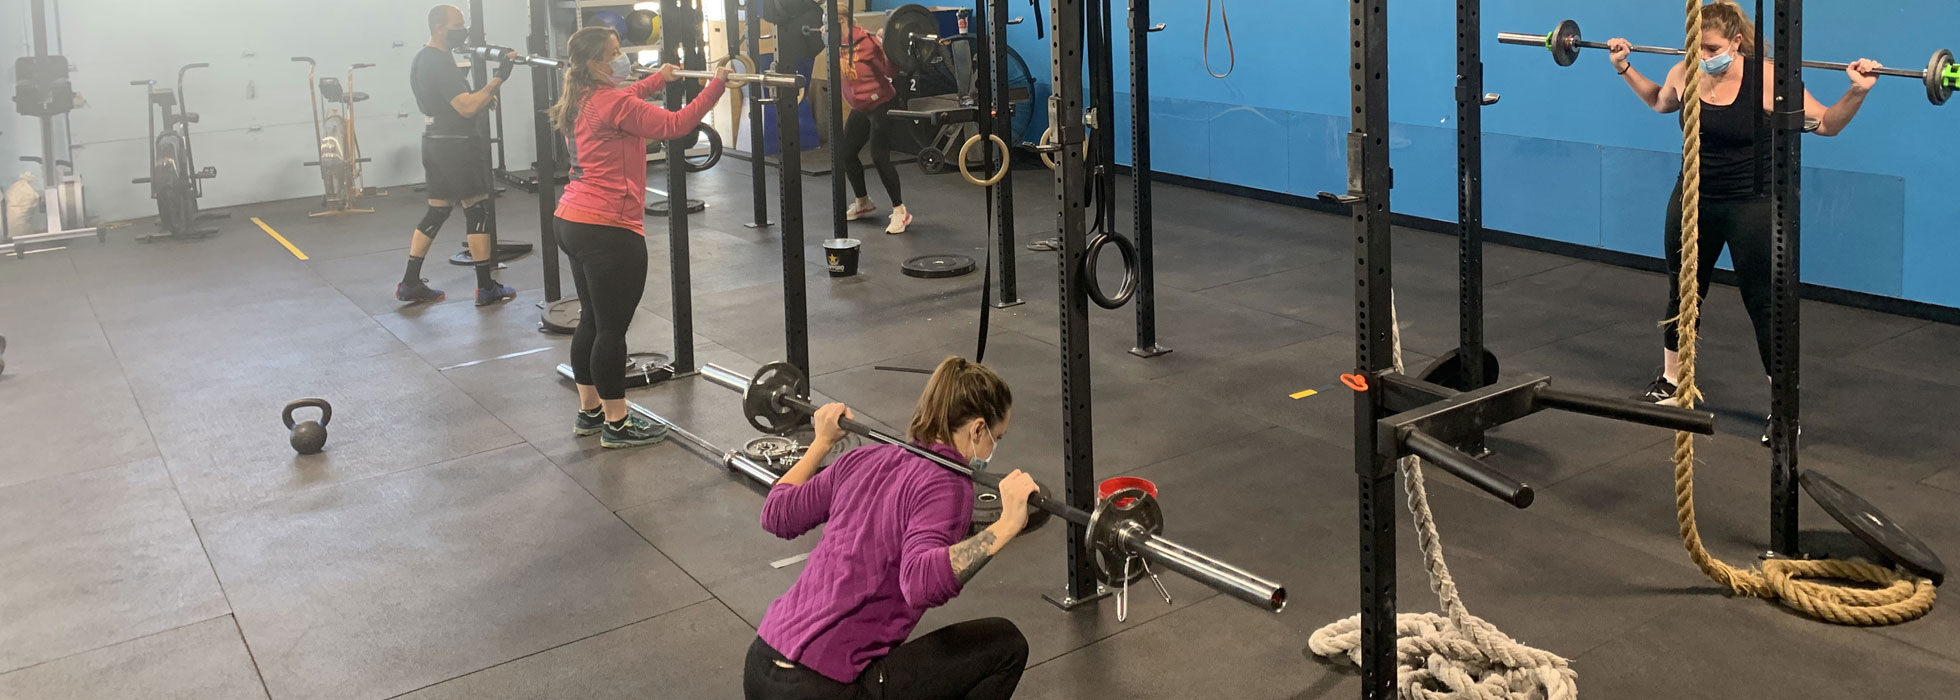 Personal Trainers In Commerce City That Can Help You Lose Weight and Get Fit